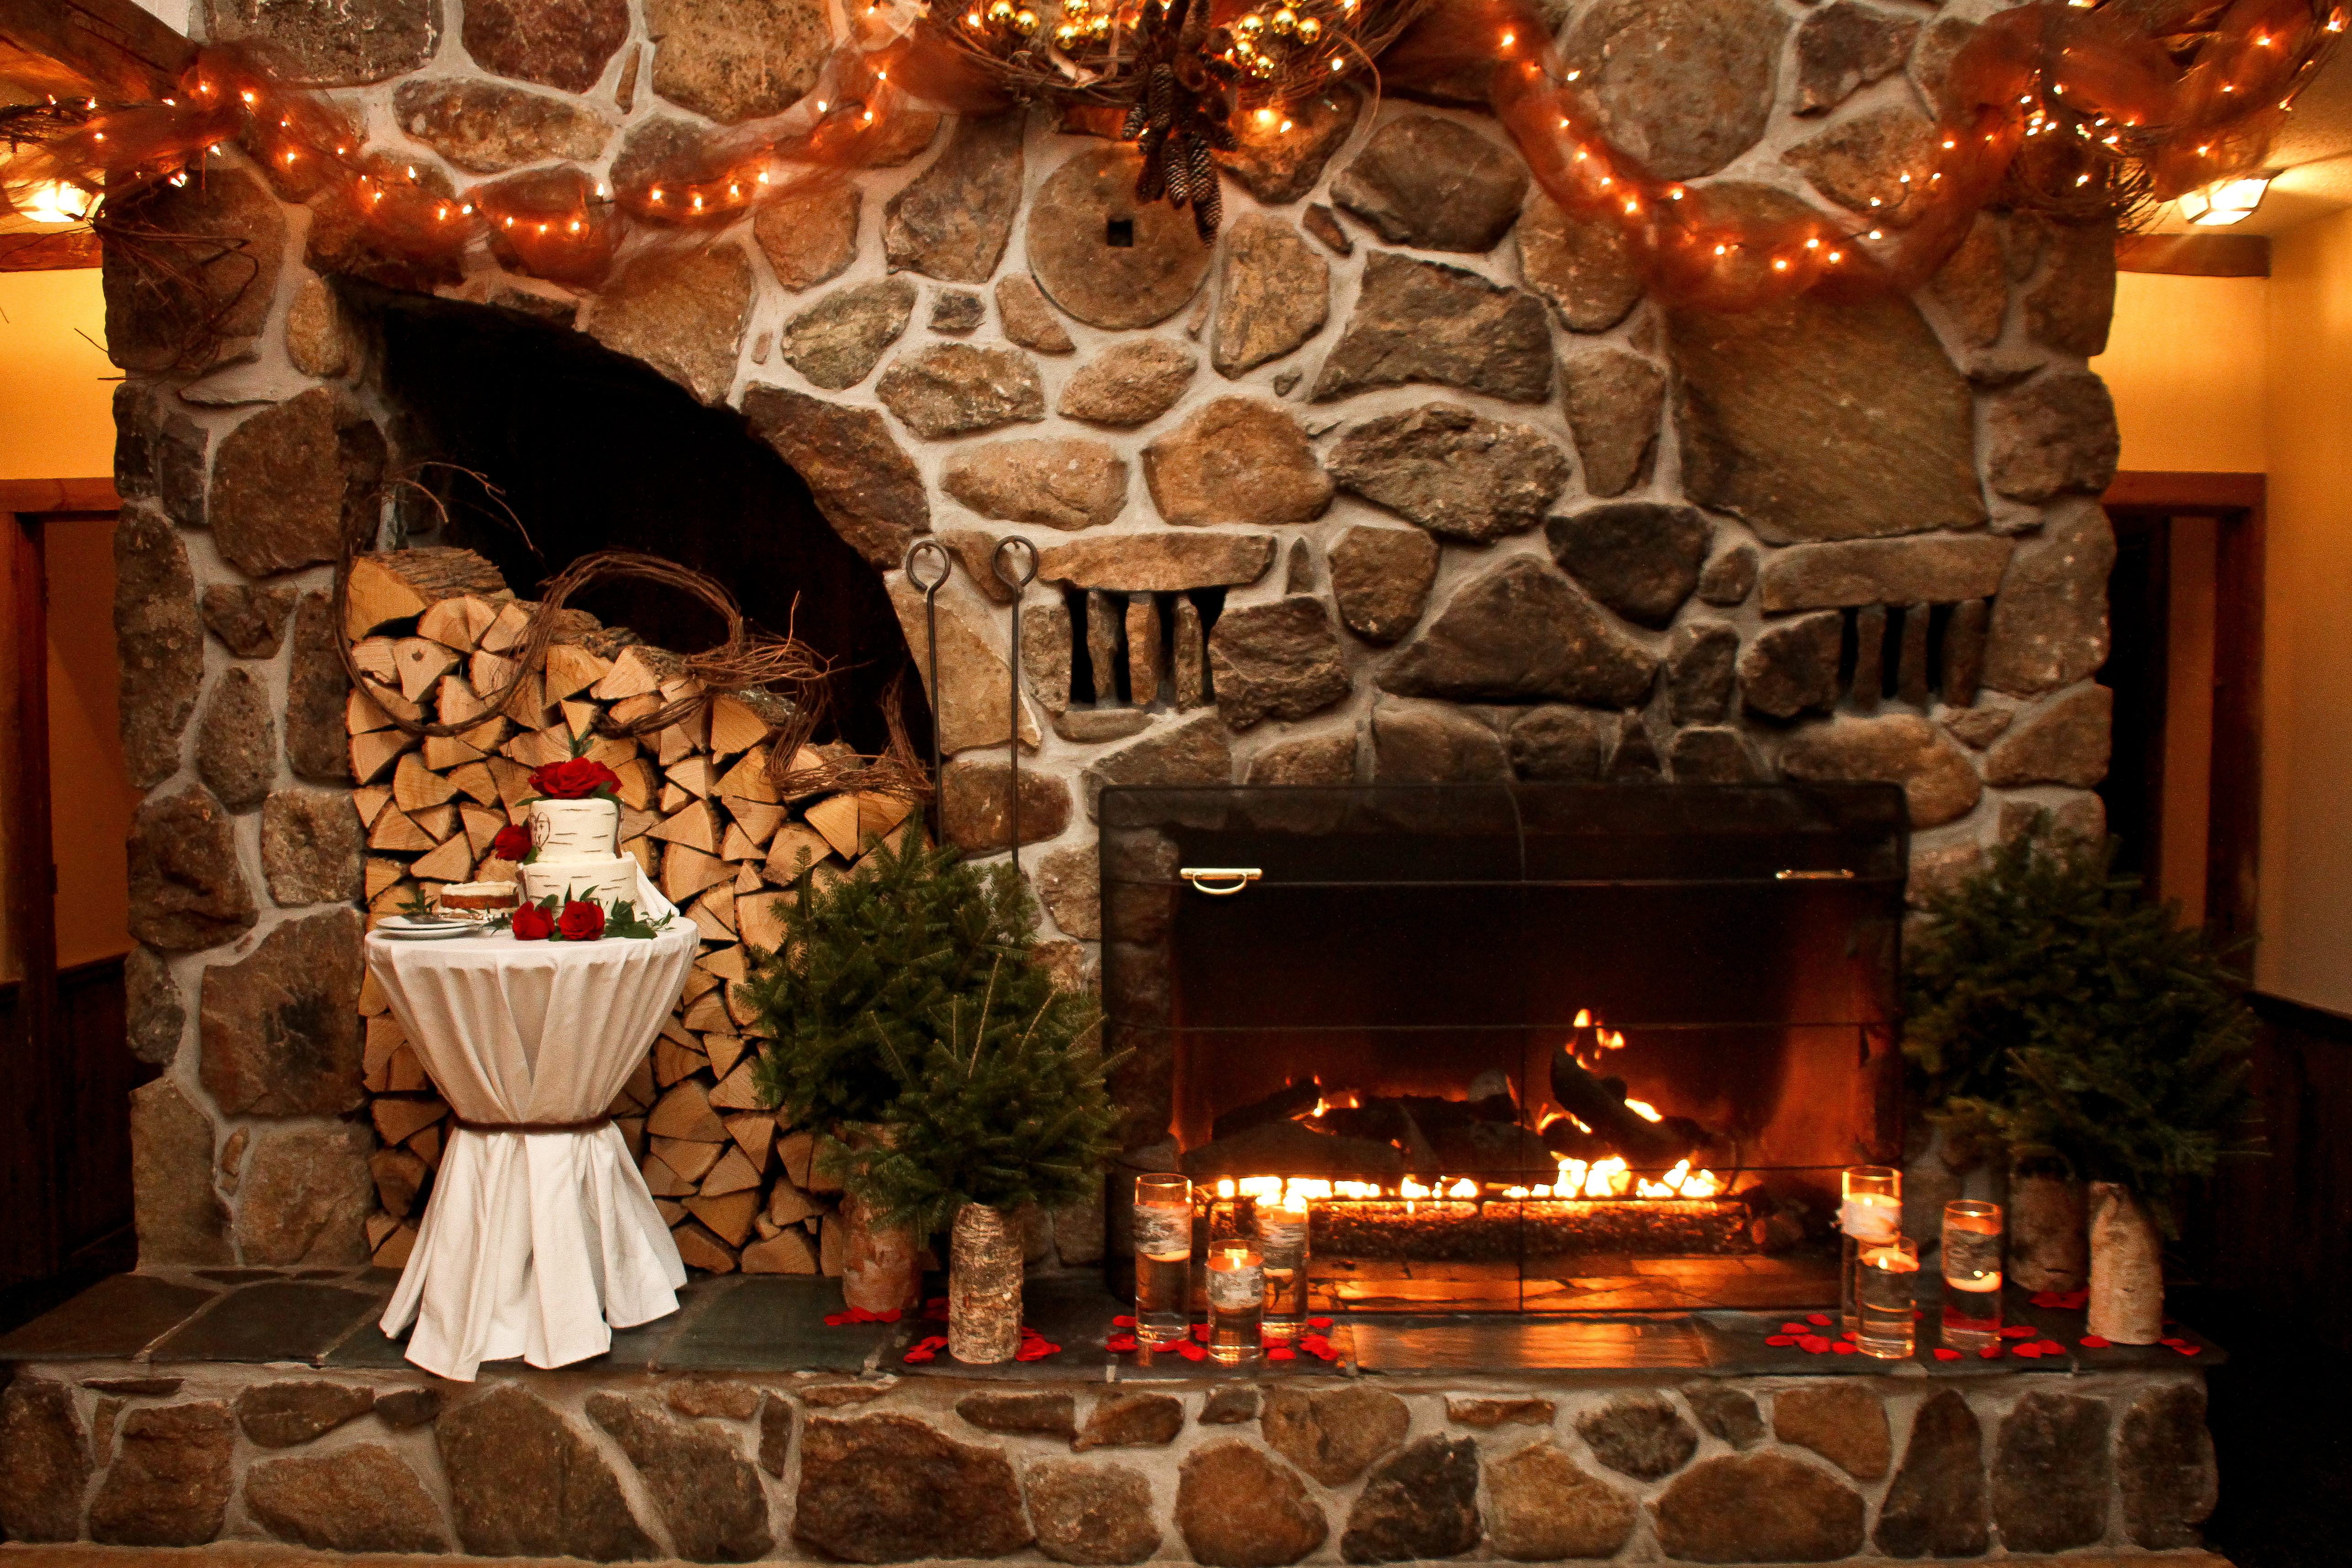 New Hampshire Barn Weddings showcase a stone fireplace and candles